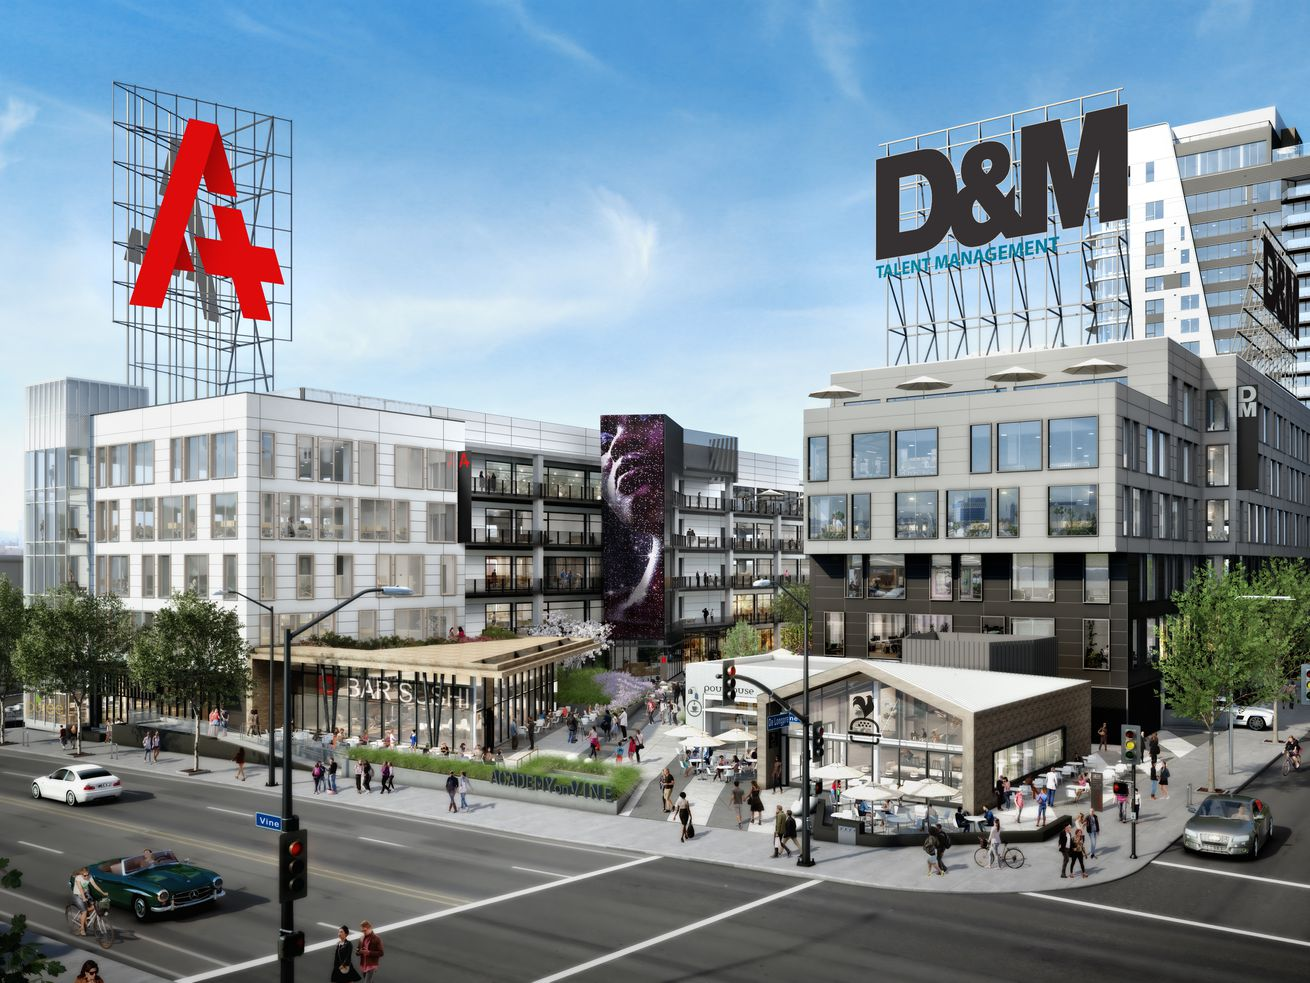 The $450 million development will rise at 1341 Vine Street—a site bordered by De Longpre, Homewood, Ivar, and Vine Street.